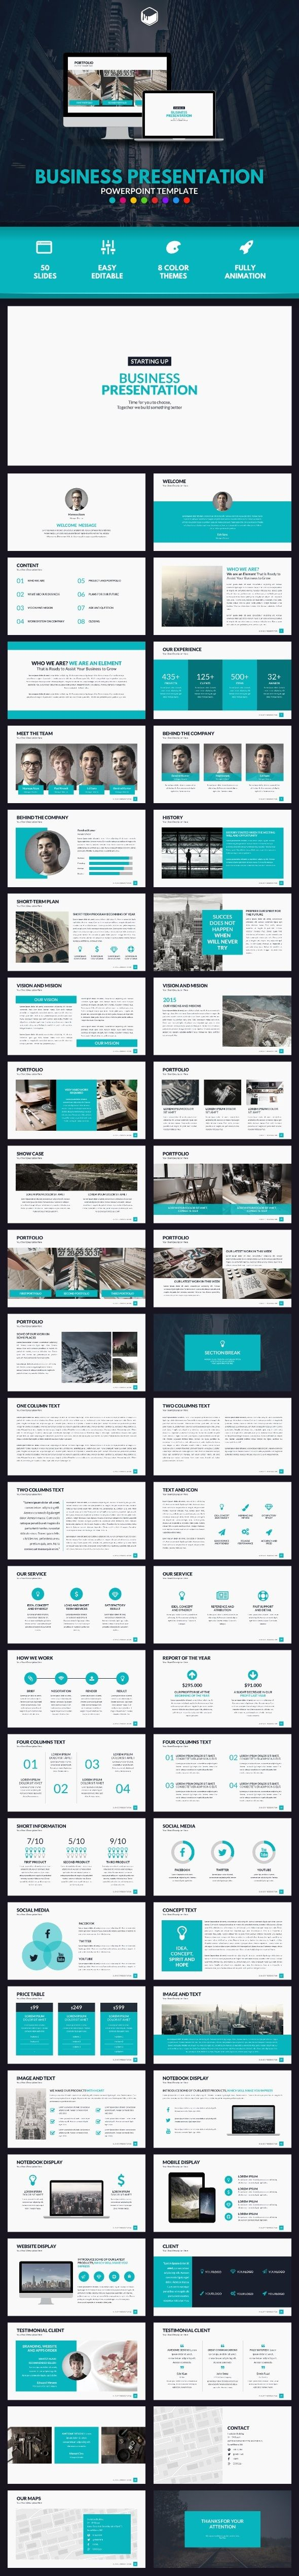 Business Presentation - PowerPoint Template #design #slides Download: http://graphicriver.net/item/business-presentation-powerpoint-template/12574621?ref=ksioks